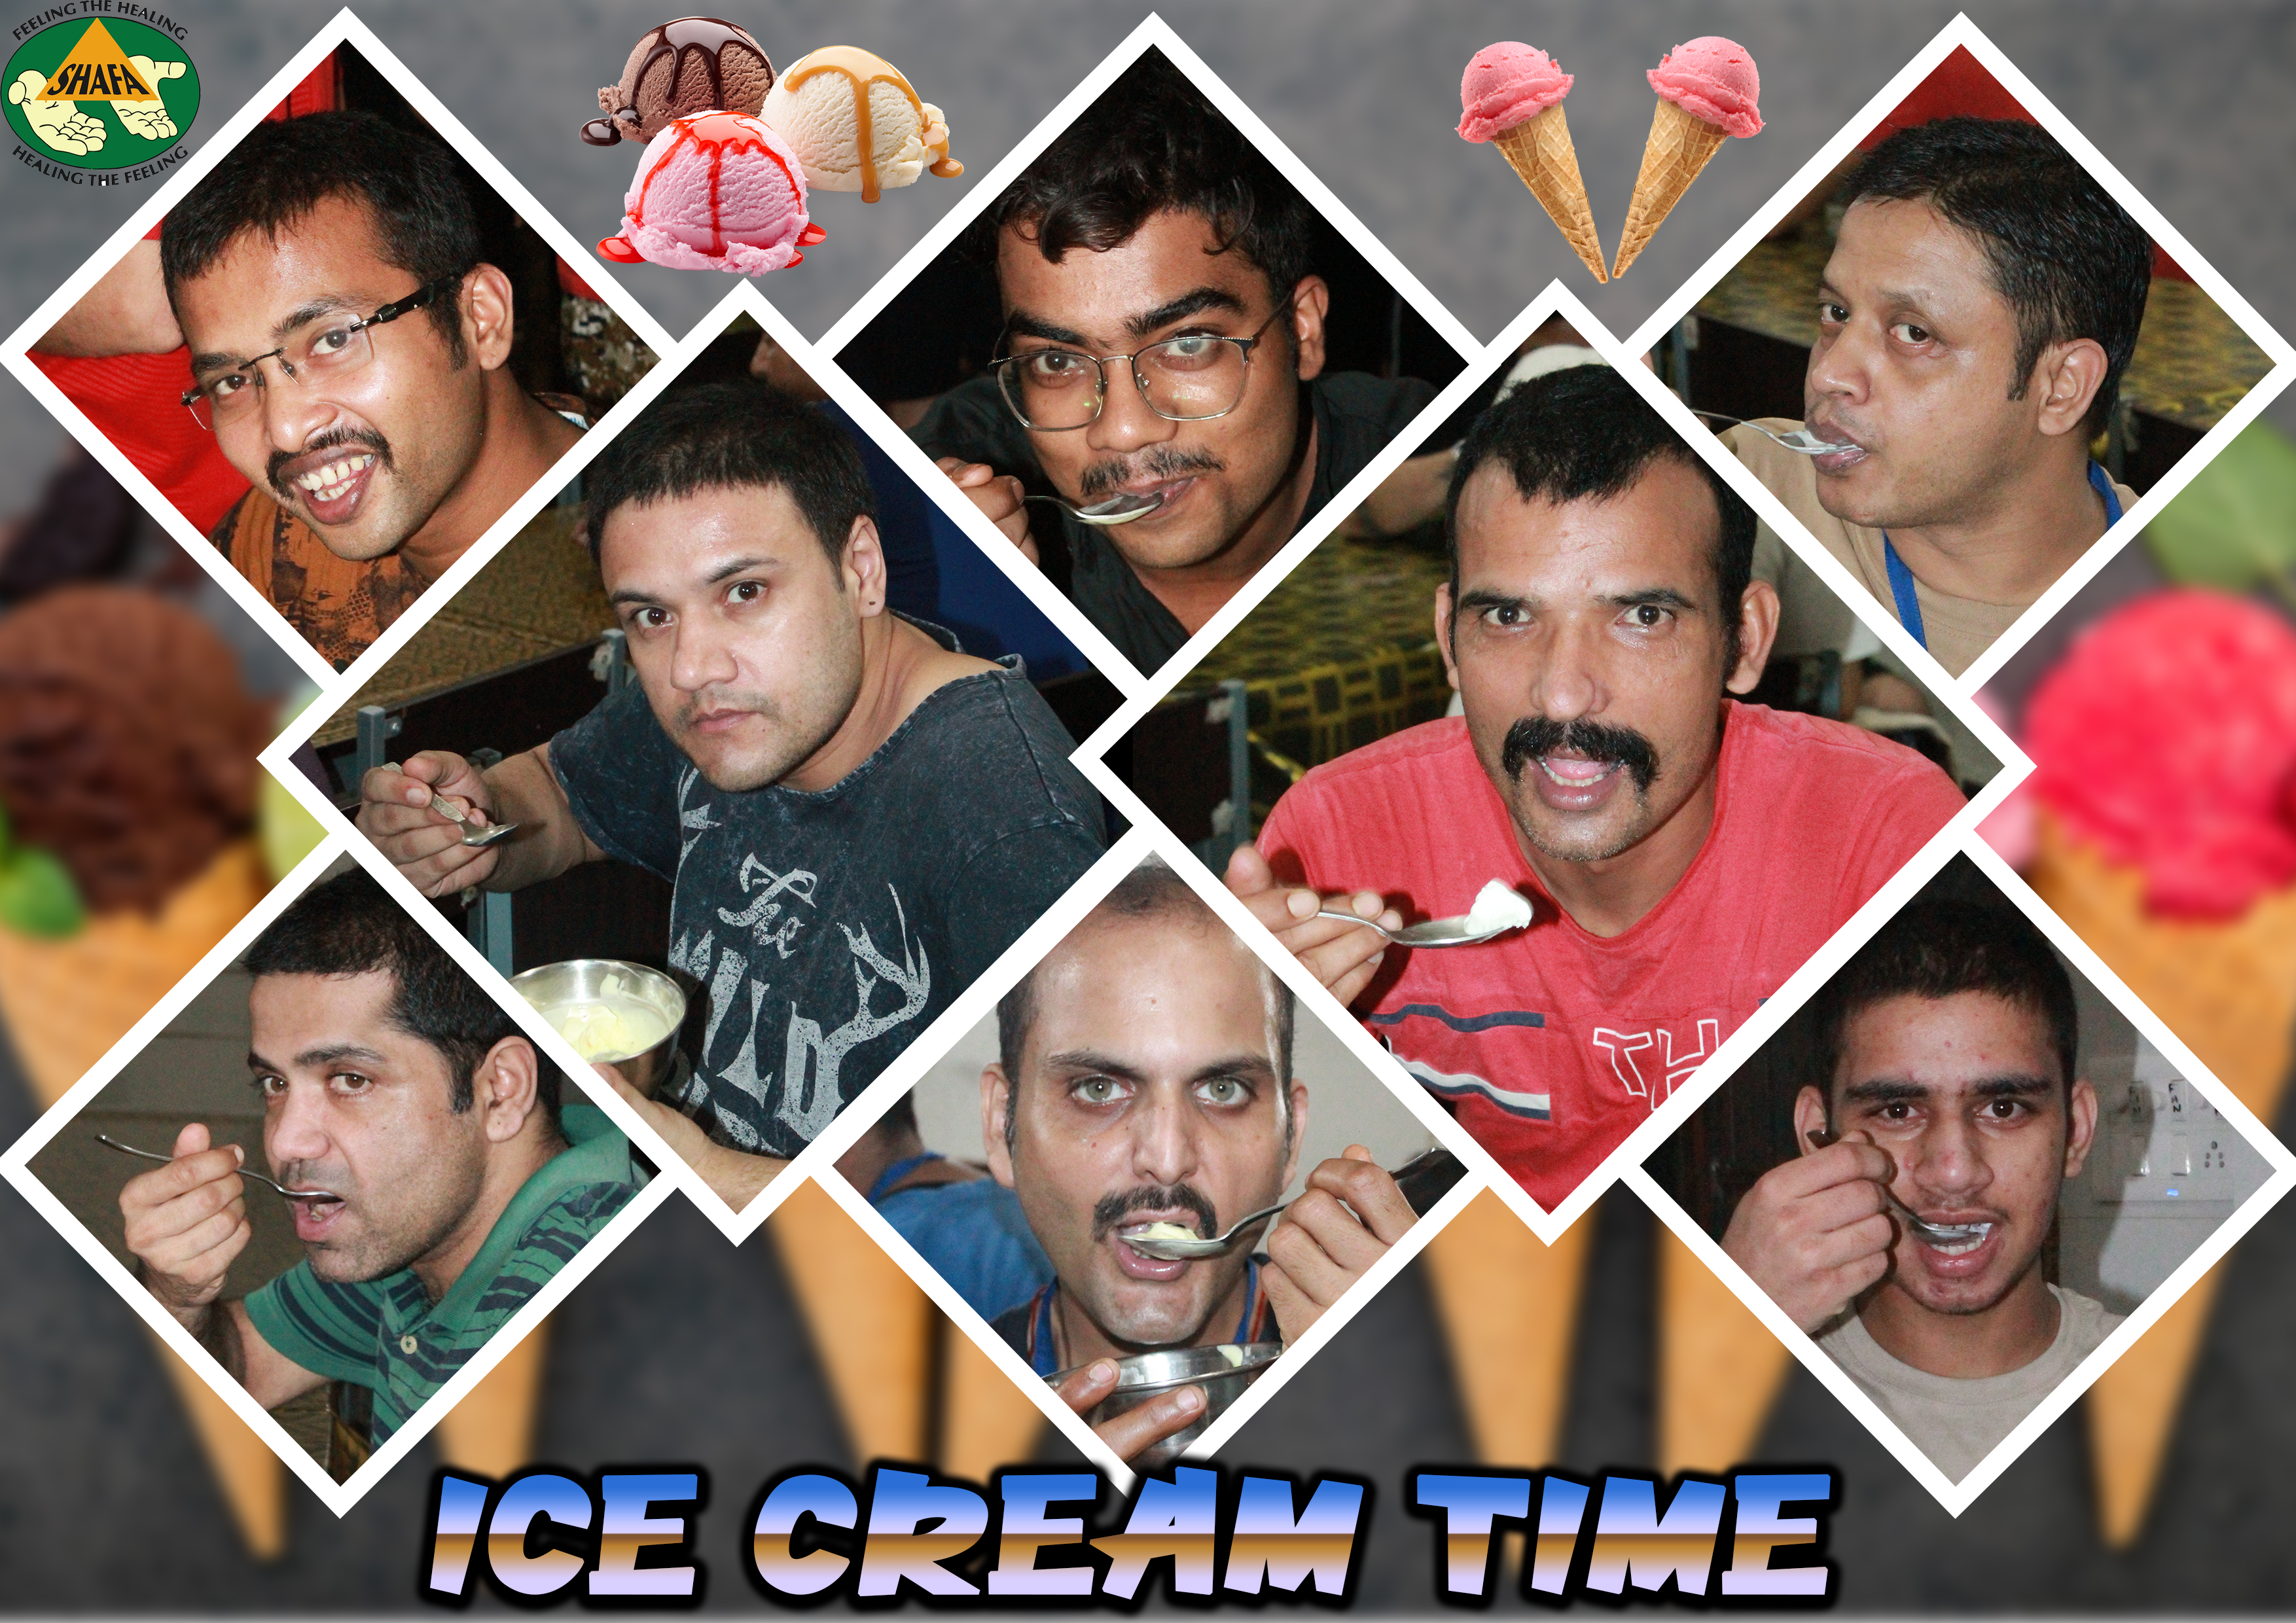 Ice Cream Time